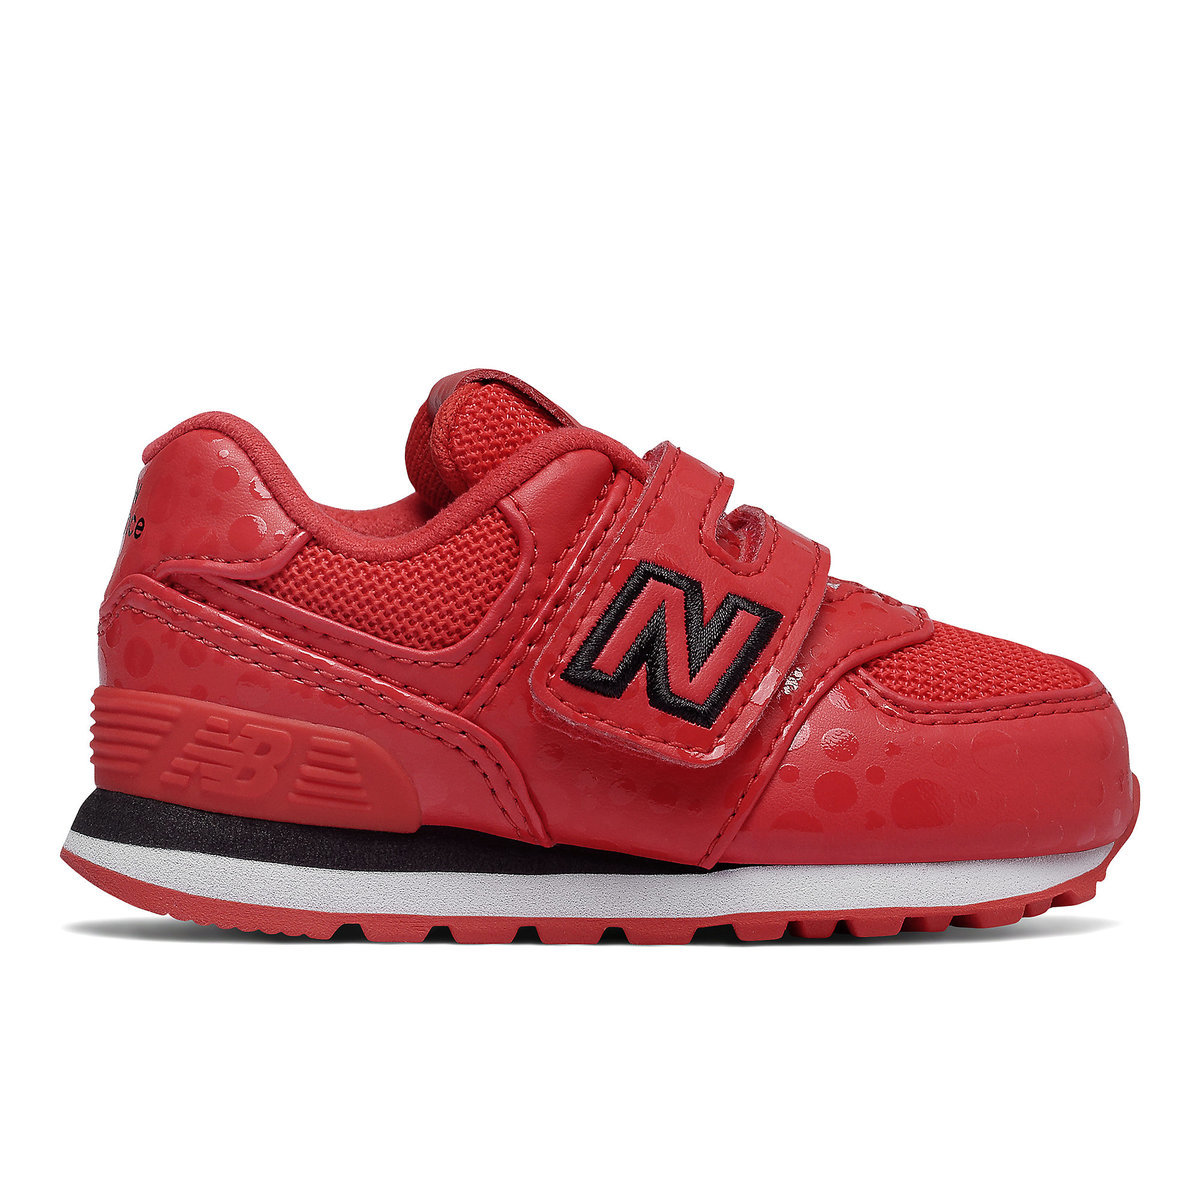 Minnie Mouse 574I Sneakers for Baby by New Balance